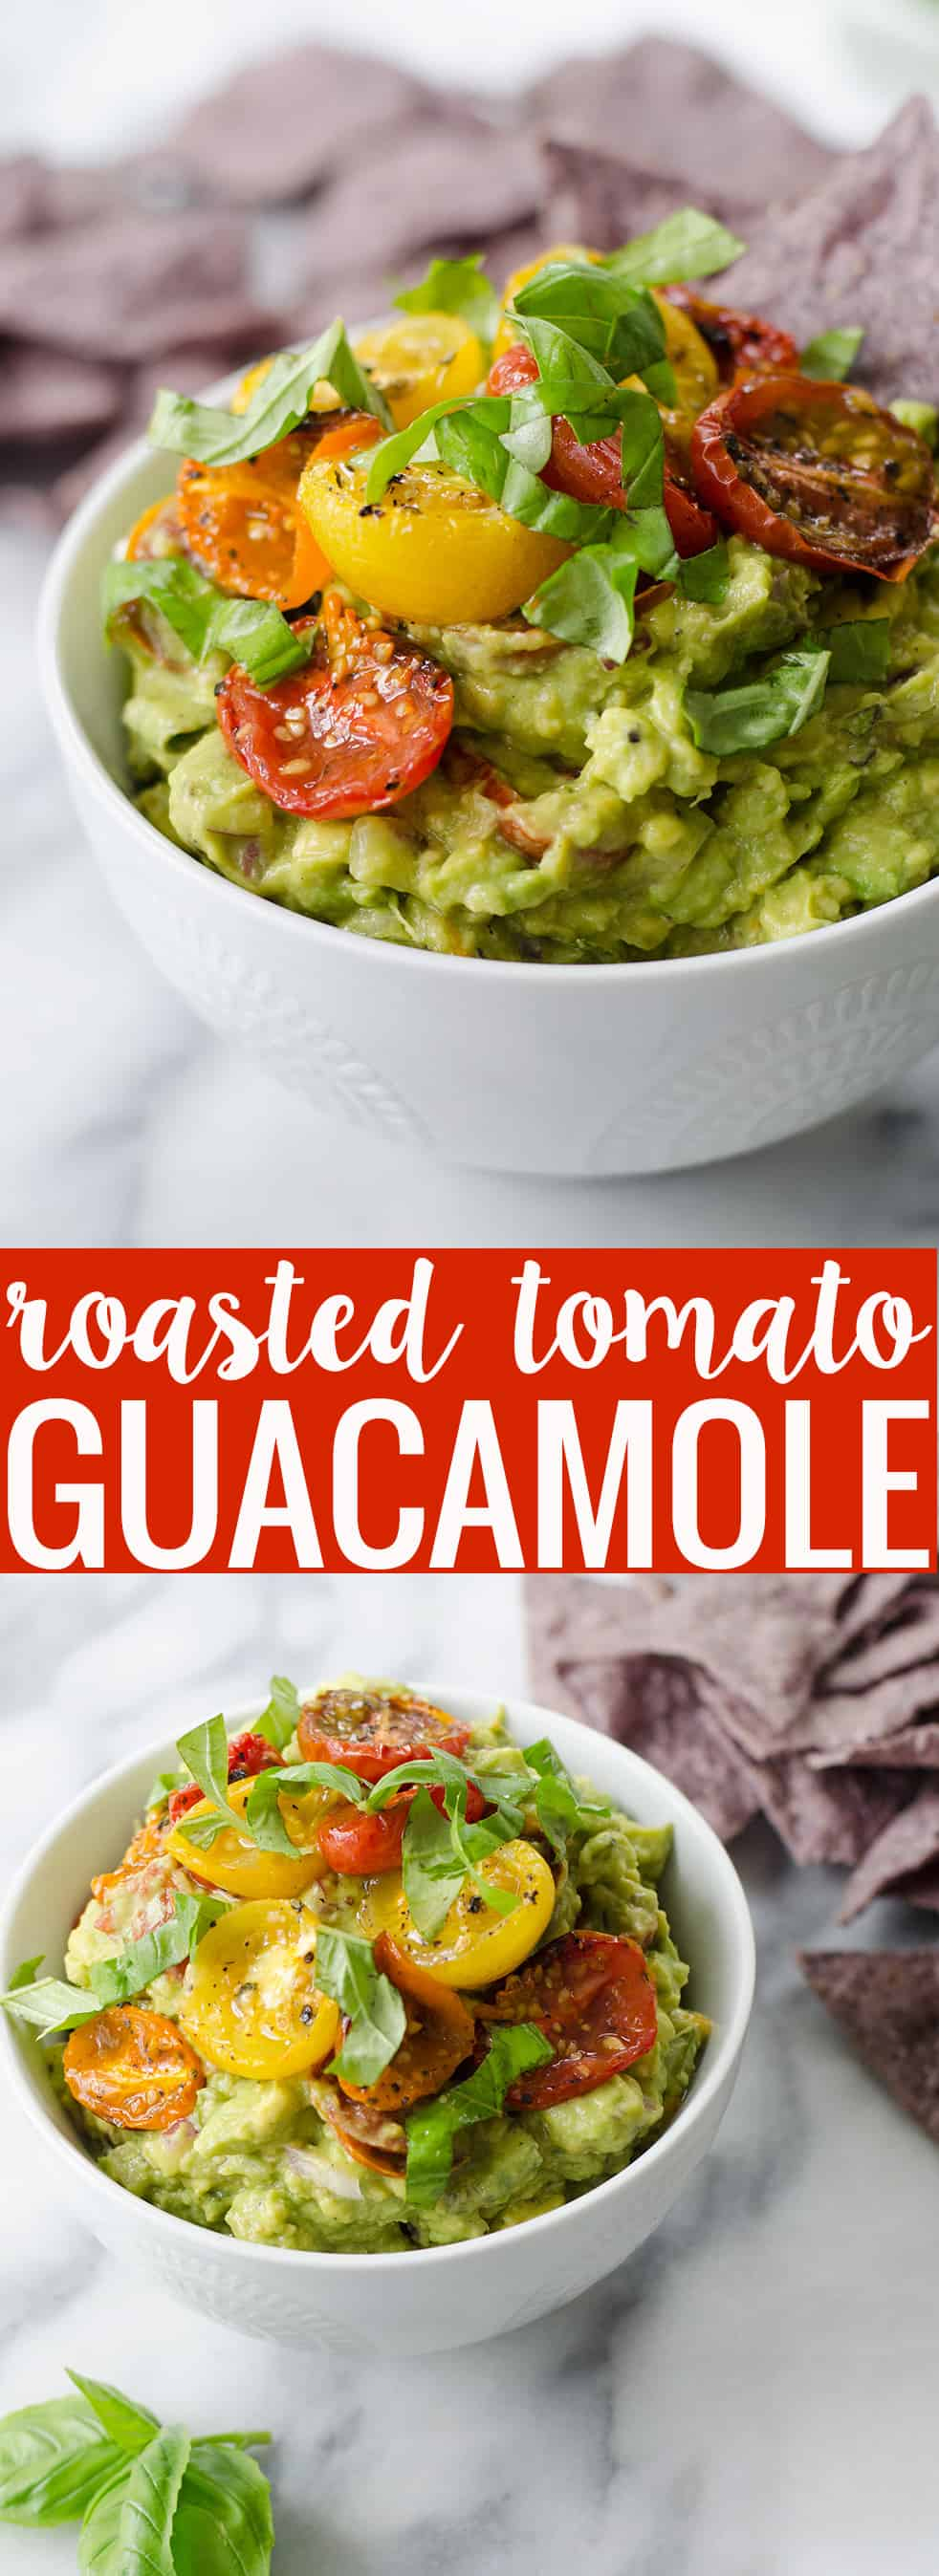 Roasted Tomato Guacamole! The perfect dip for summer or to spread on avocado toast. Vegan & Gluten-Free | www.delishknowledge.com